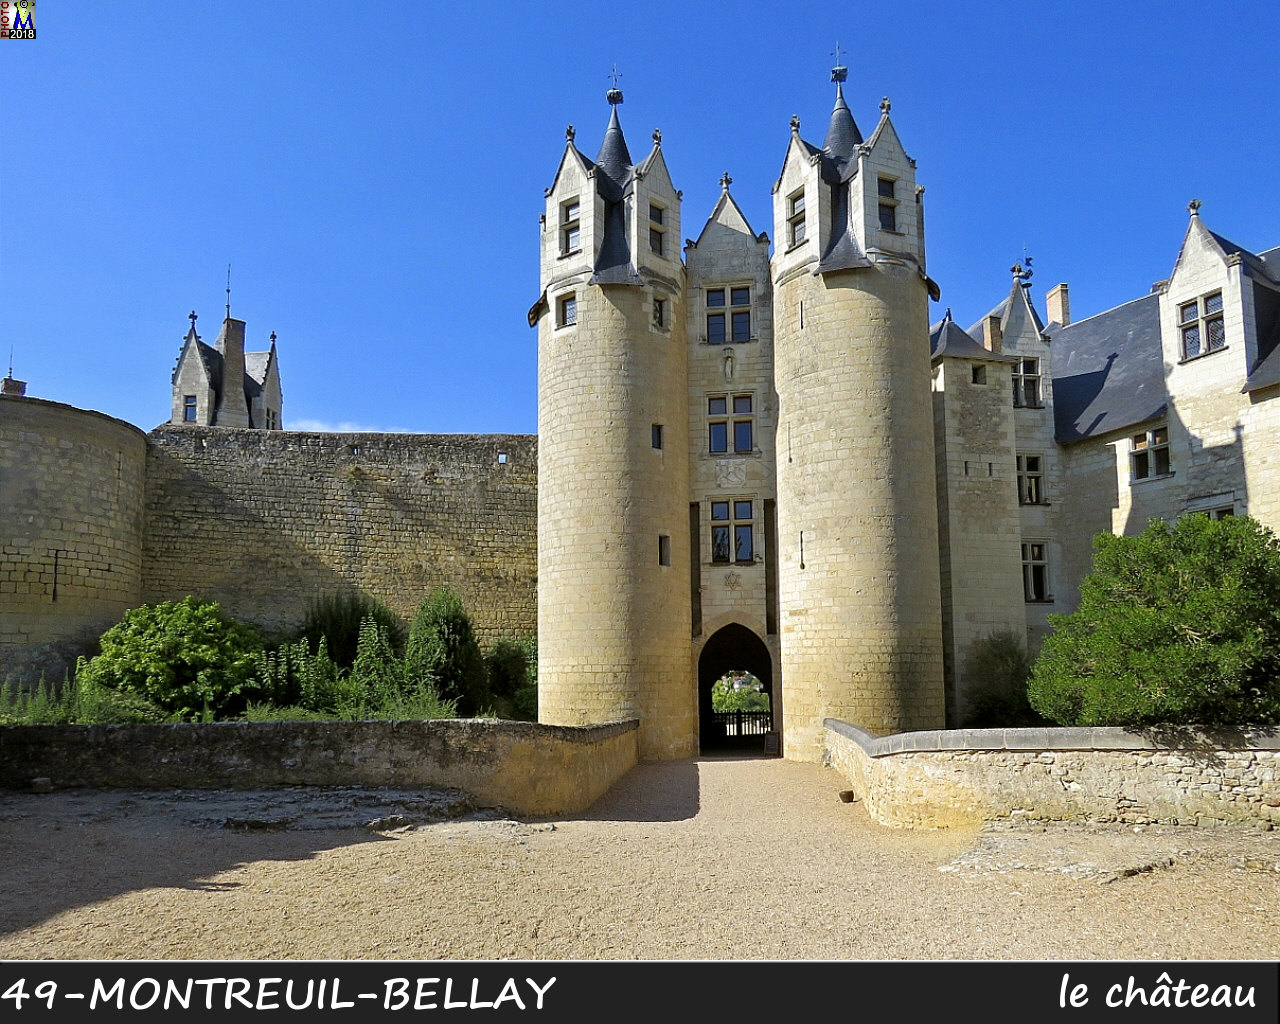 49MONTREUIL-BELLAY_chateau_1002.jpg